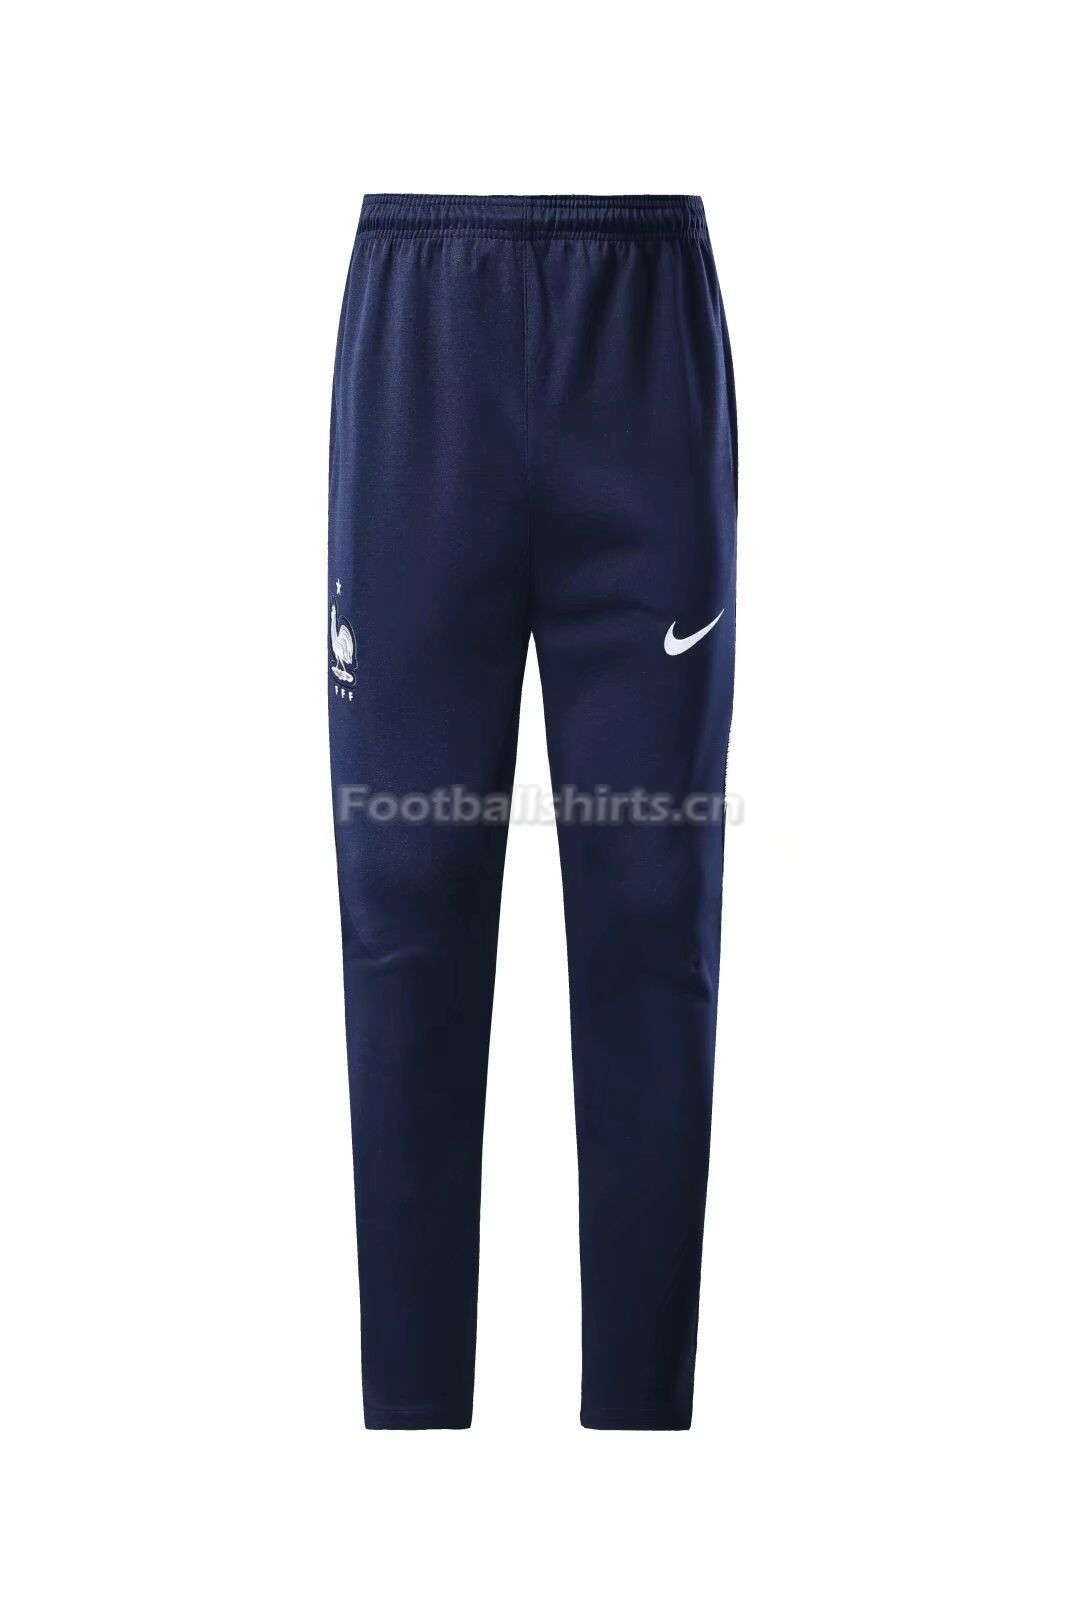 France 2018 World Cup Blue Training Pants